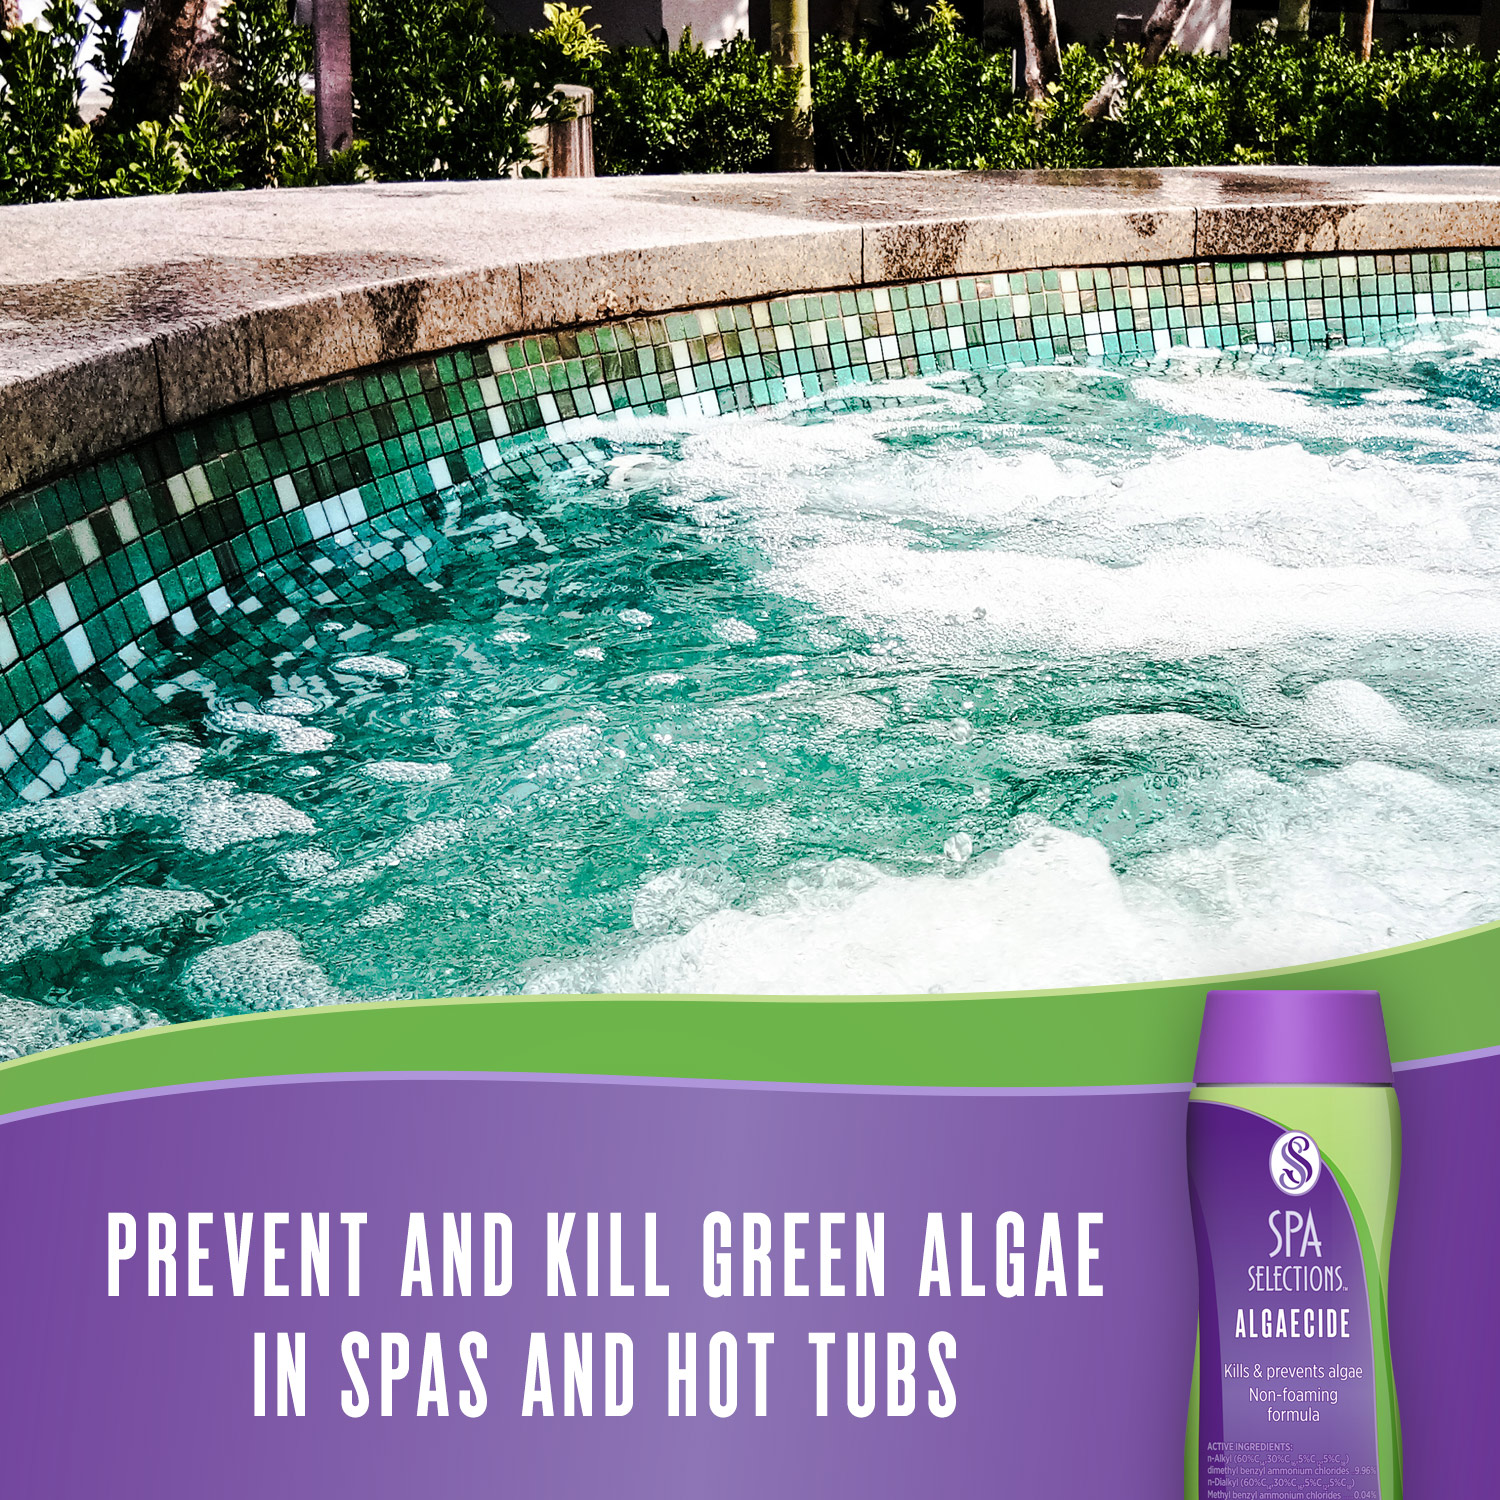 Prevent and kill green algae in spas and hot tubs with Spa Selections Algaecide.